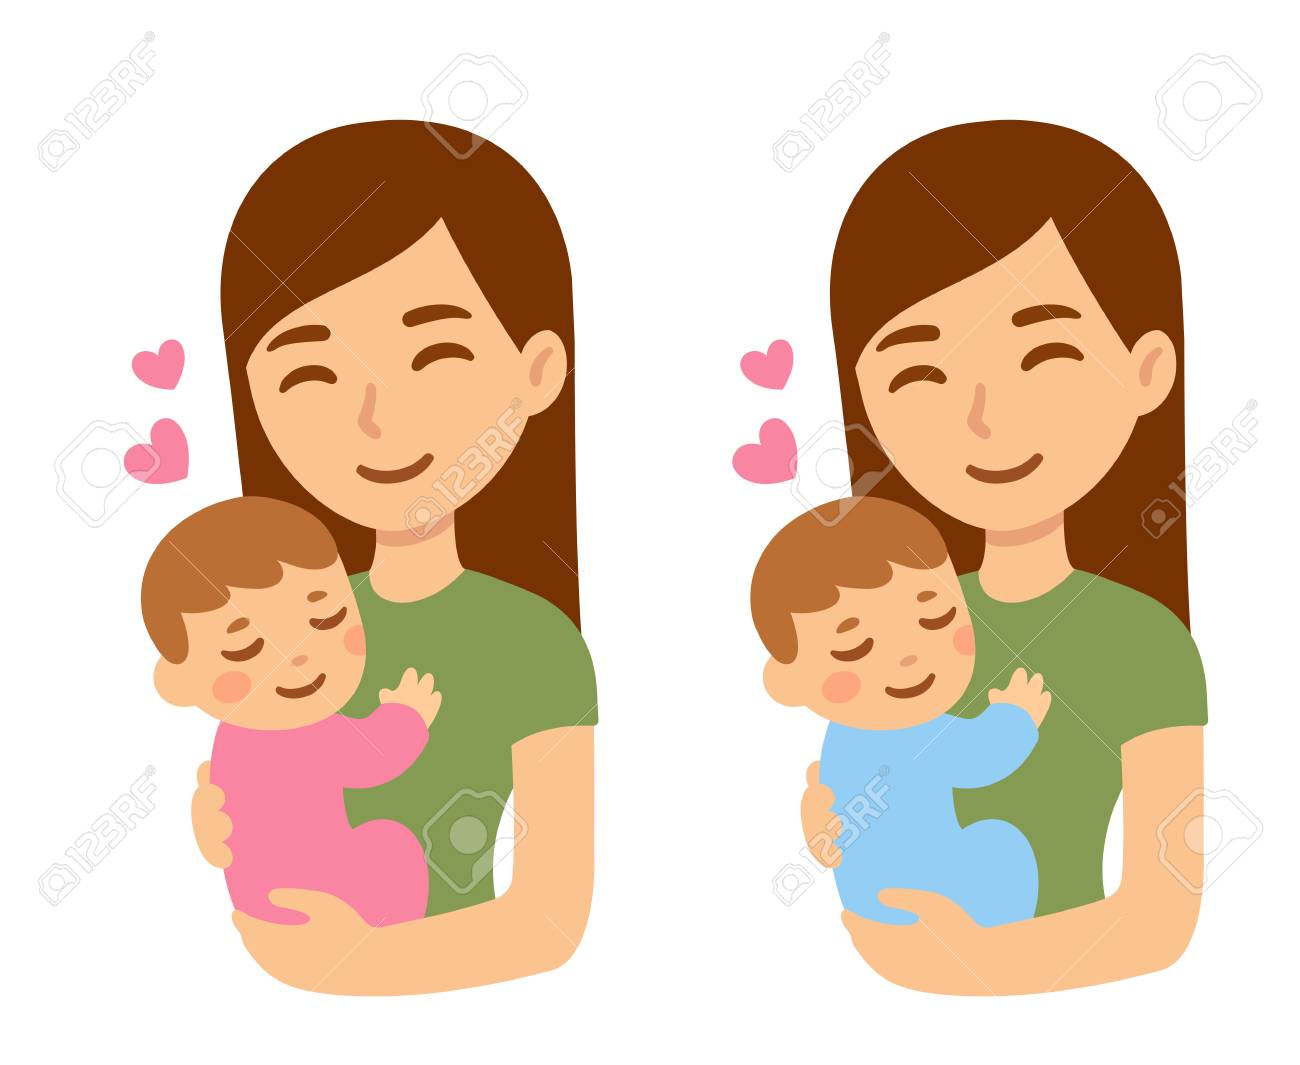 Cute Cartoon Mother With Baby Boy And Girl Happy Young Woman Royalty Free Cliparts Vectors And Stock Illustration Image 121527405